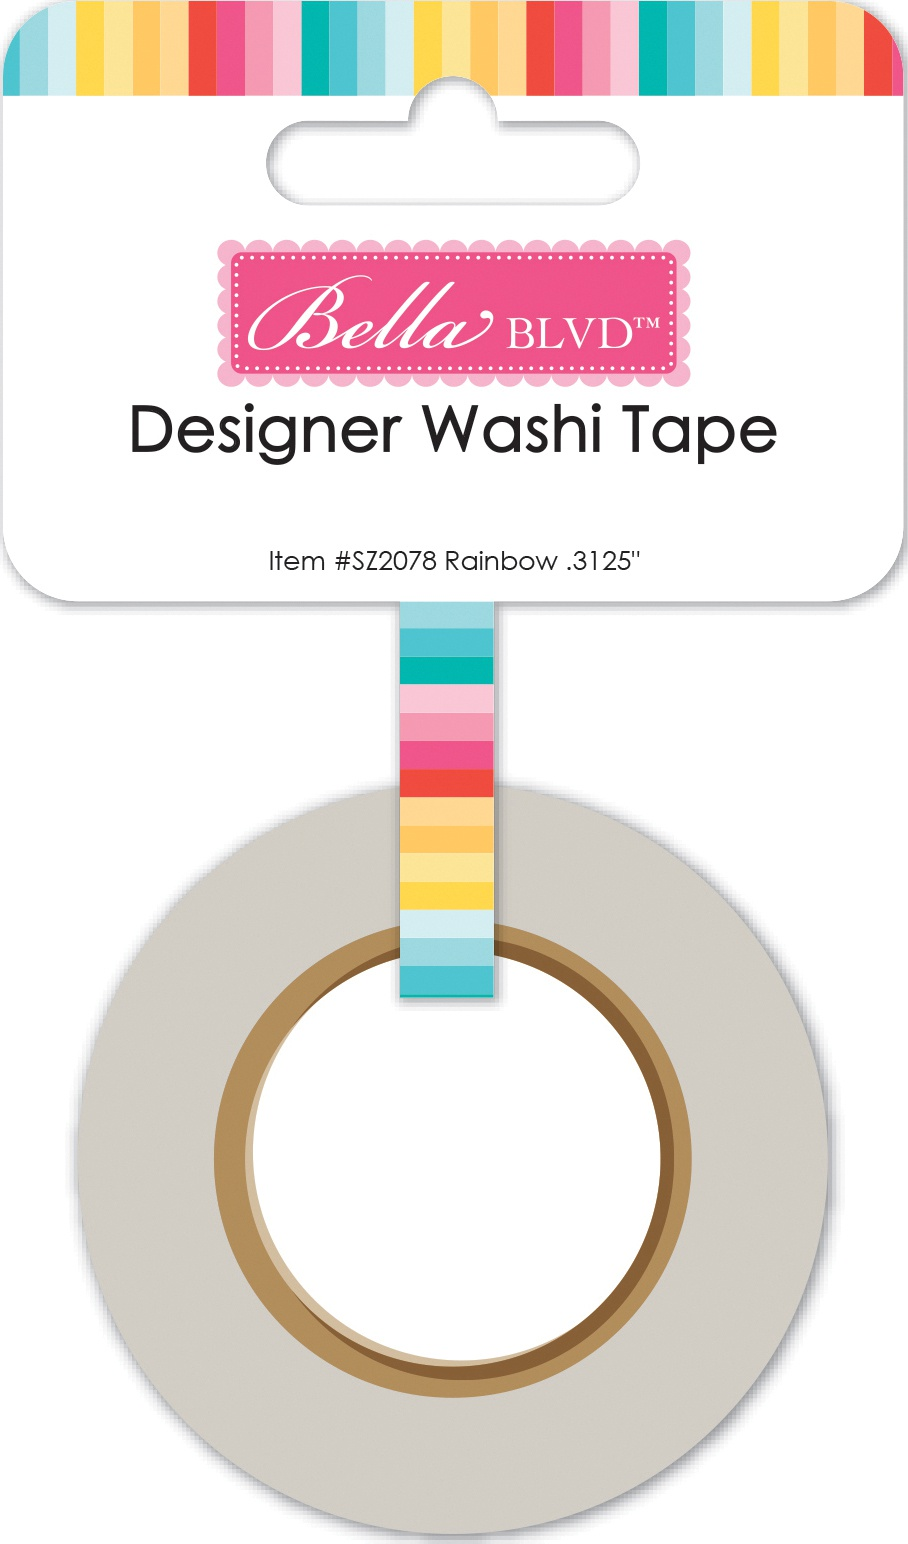 Bella Blvd - Splash Zone Designer Washi Tape - Rainbow